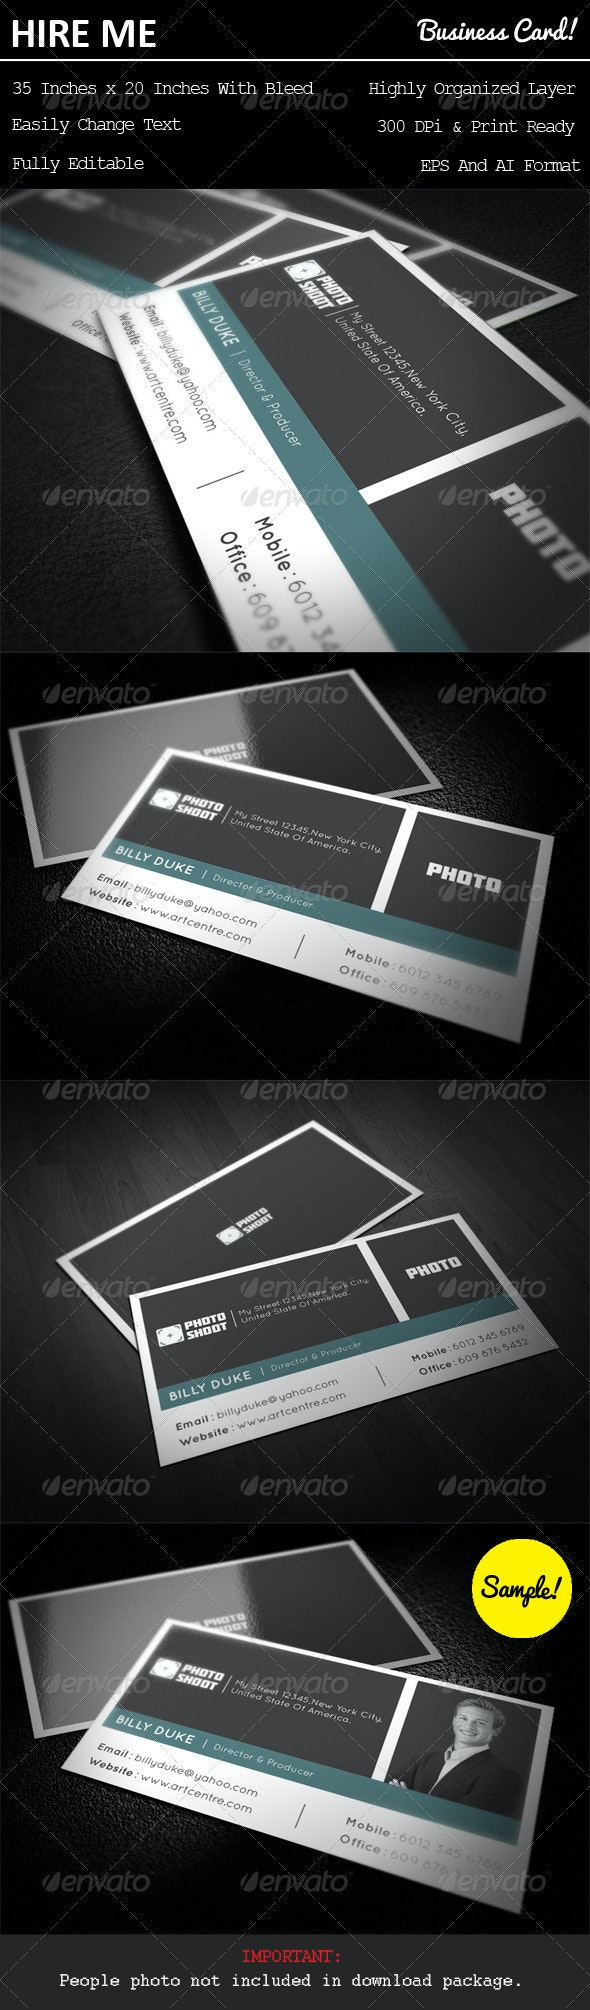 Photo Shoot Business Card - Industry Specific Business Cards